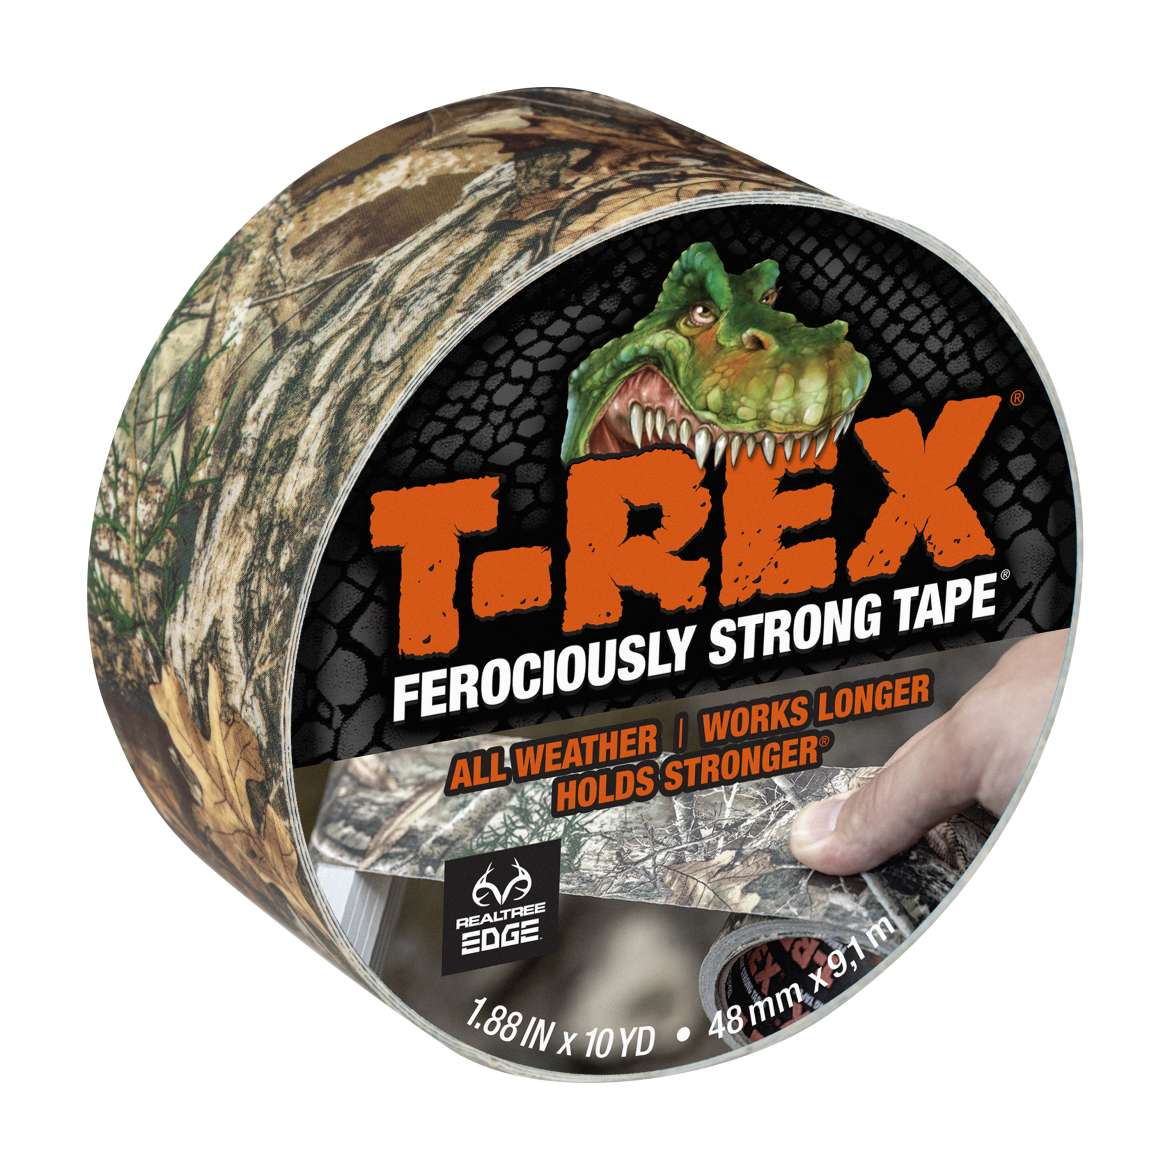 T-Rex® Tape Camo Realtree® Edge 1.88 in. x 10 yd.